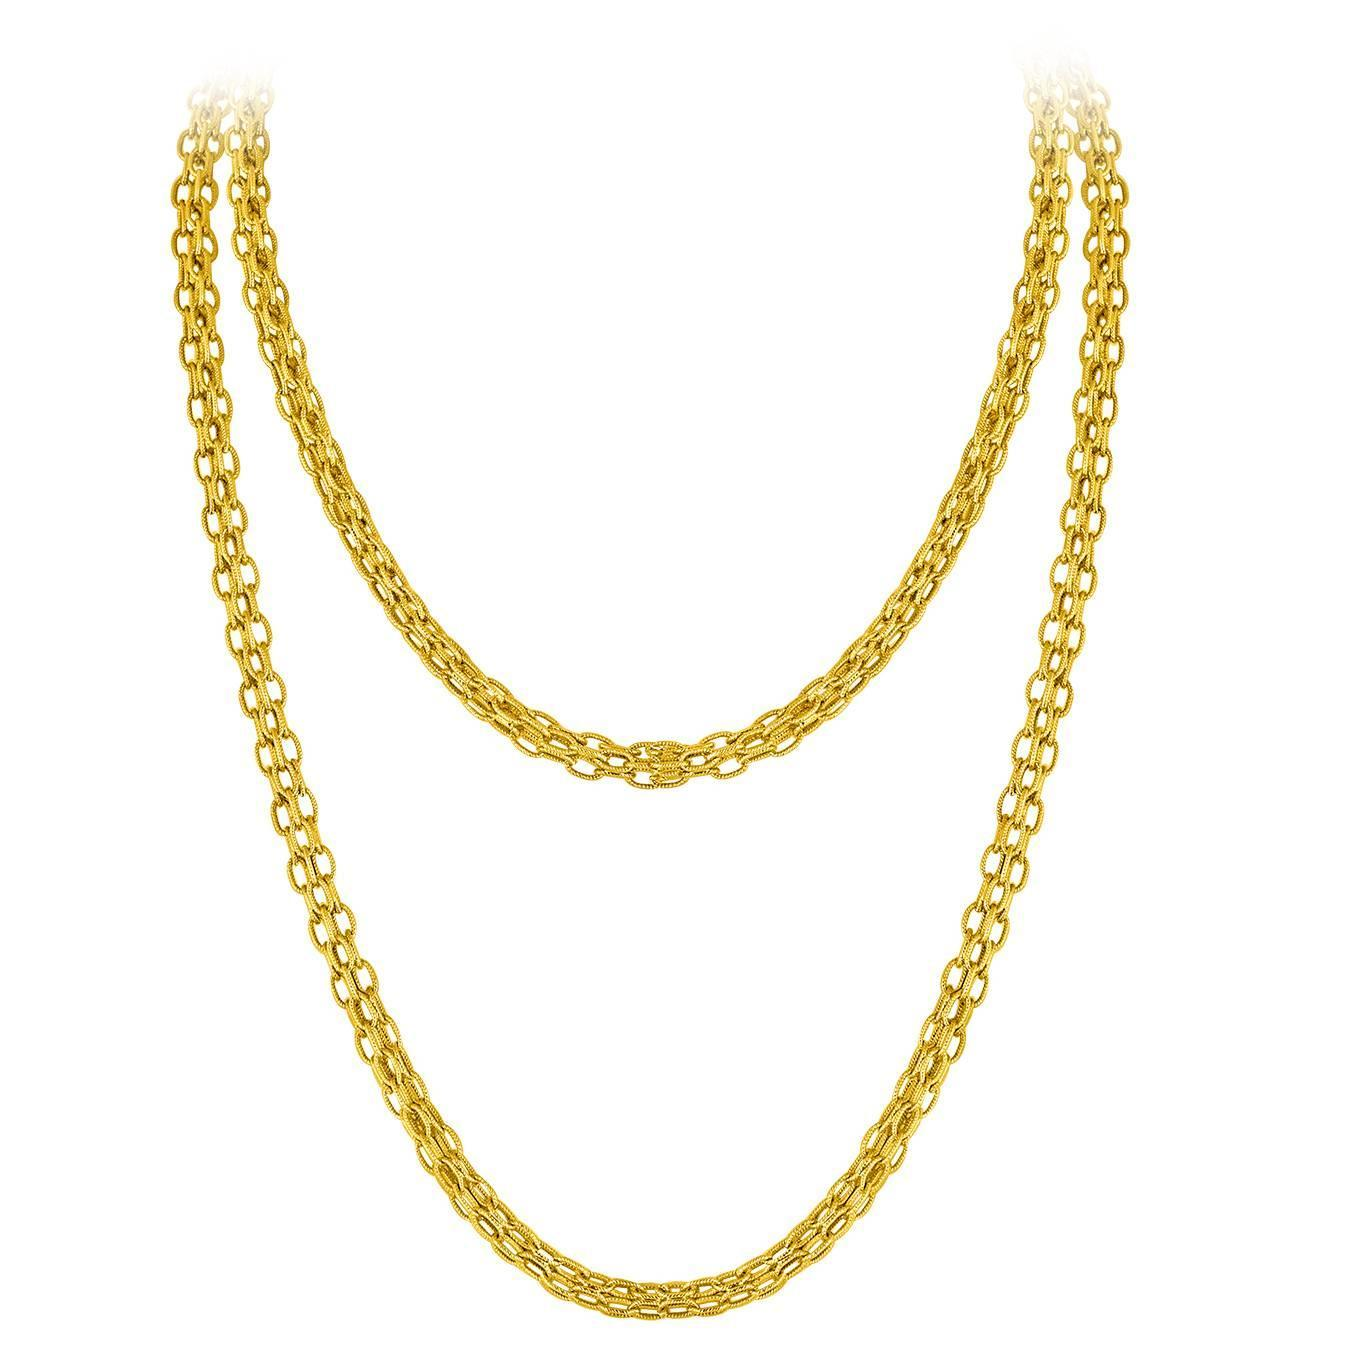 estate gold chain necklace c.1960u0027s for sale at 1stdibs ubrkqmz